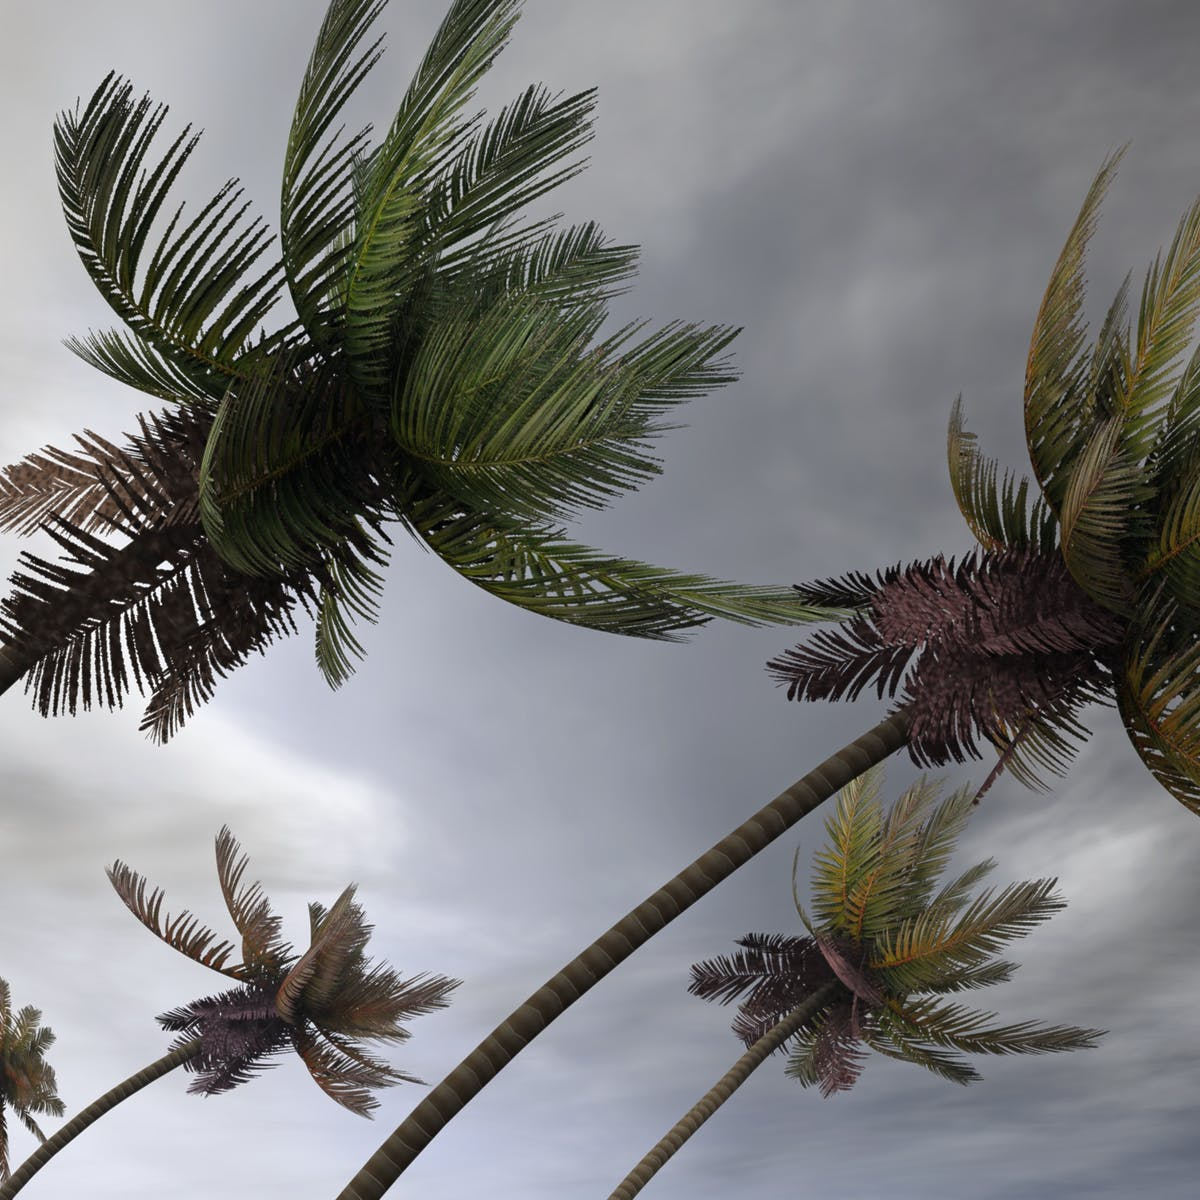 Storm Warning A New Long Range Tropical Cyclone Outlook Is Set To Reduce Disaster Risk For Pacific Island Communities